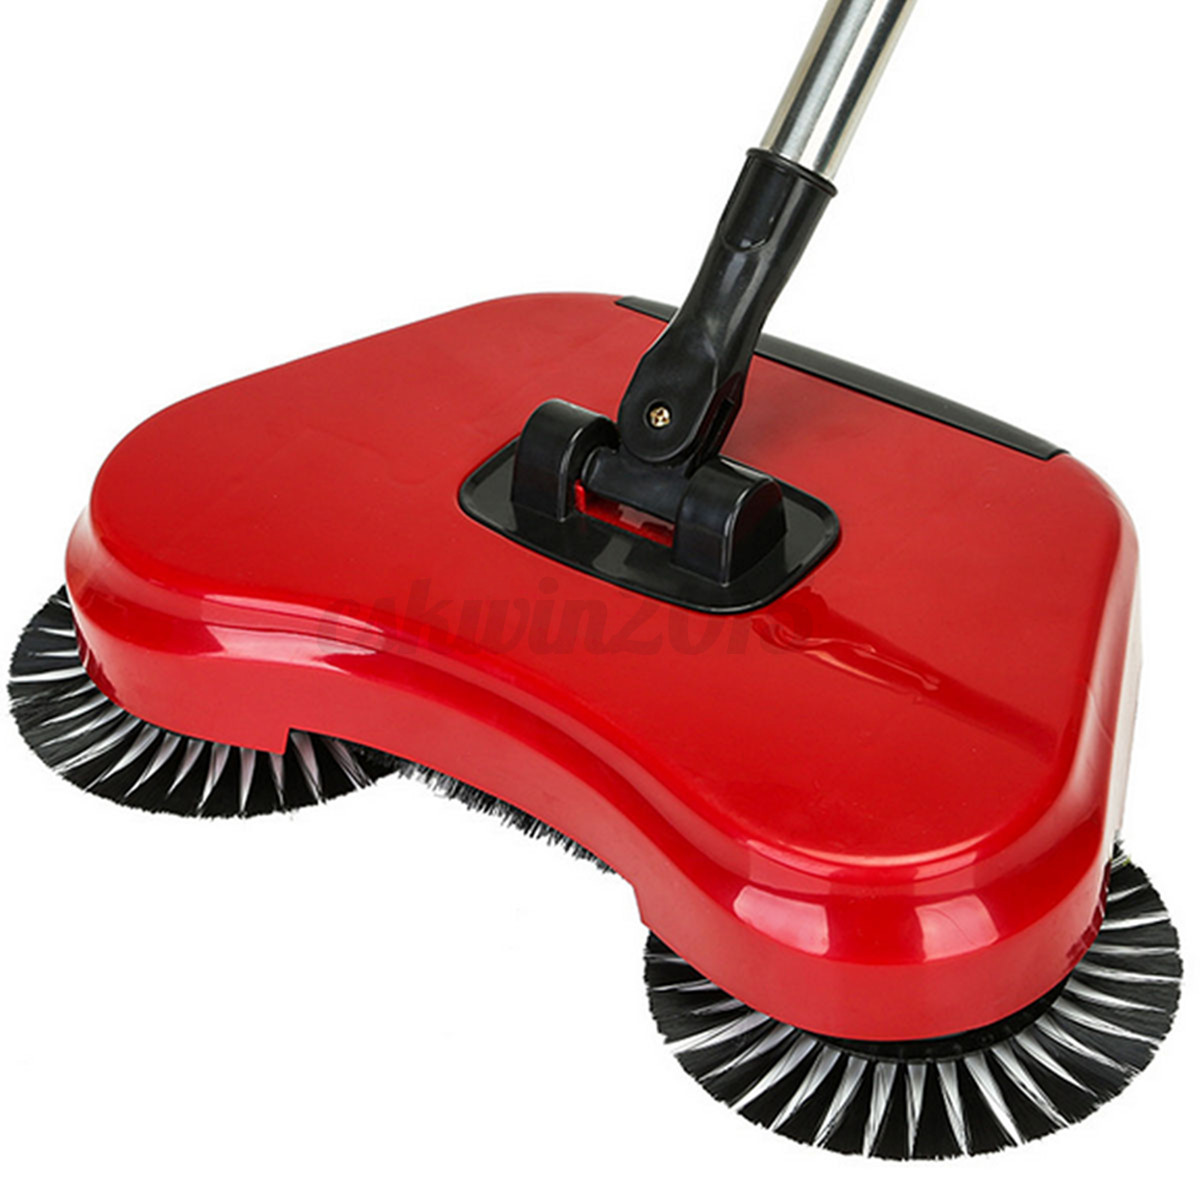 No Electricity Noise Spin Broom Hand Push Sweeper Mop Home